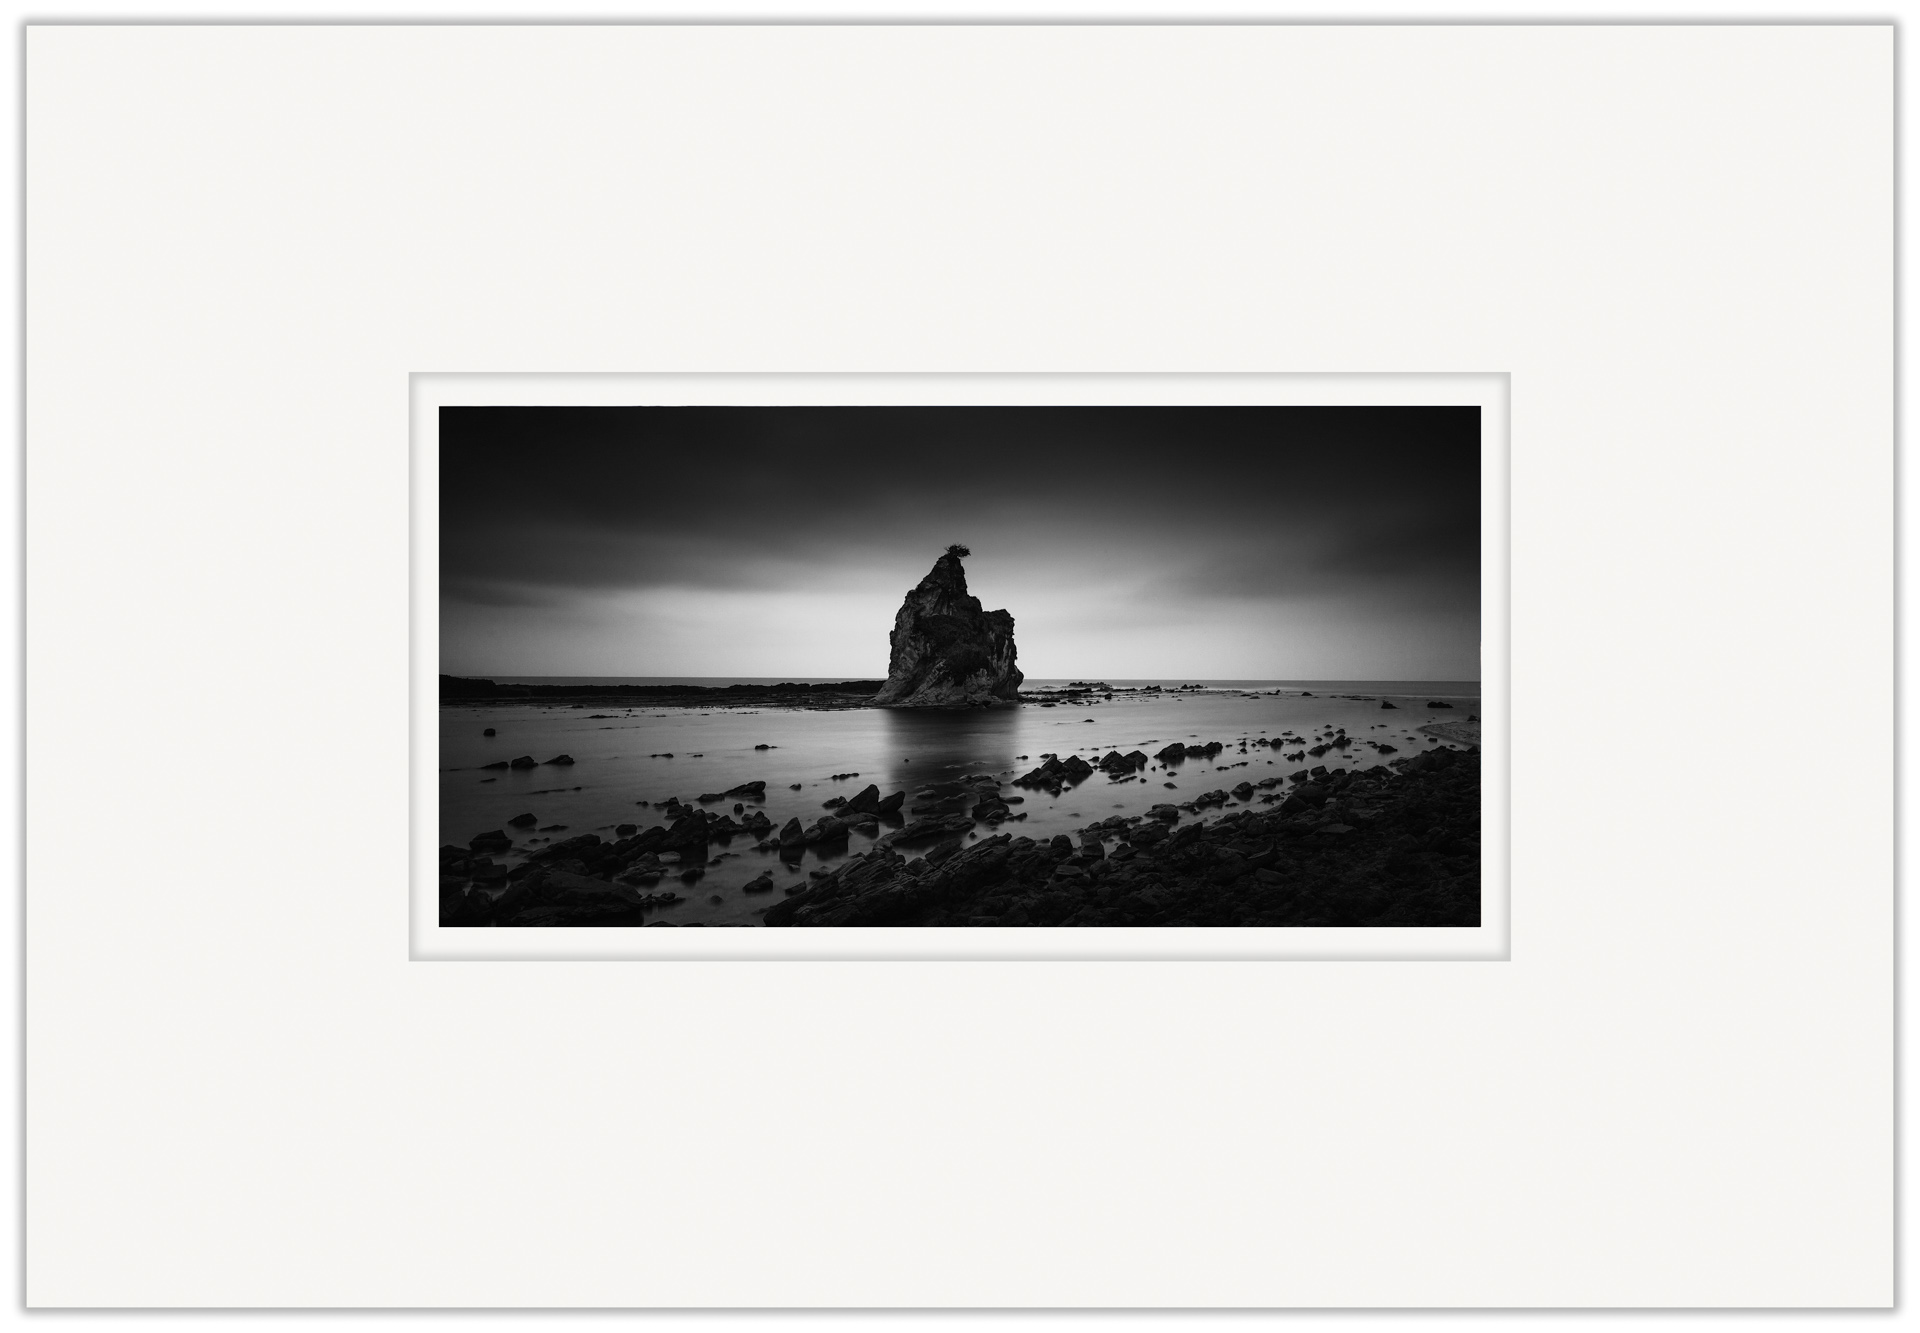 Black Sail   20cm x 40cm Photo Paper Limited Edition of 99   IDR 1,399,000